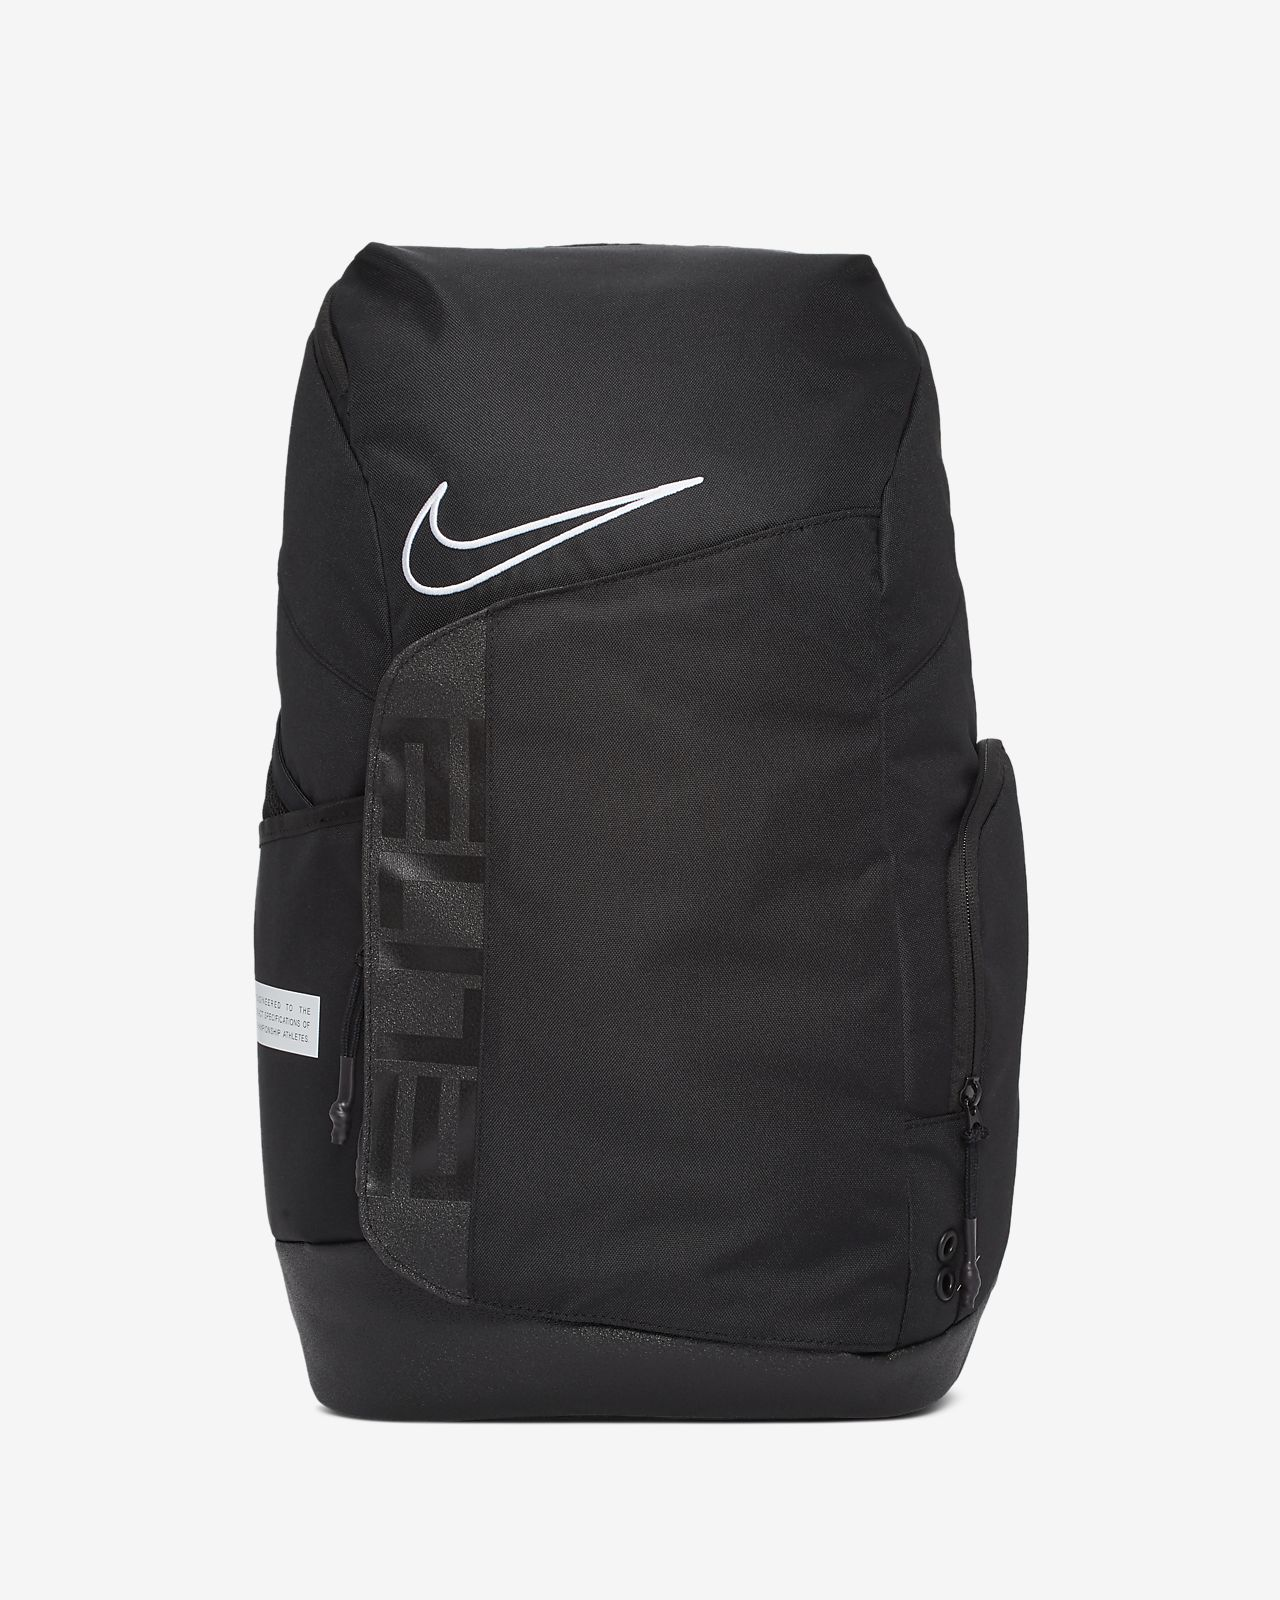 Nike Elite Pro Basketball Backpack